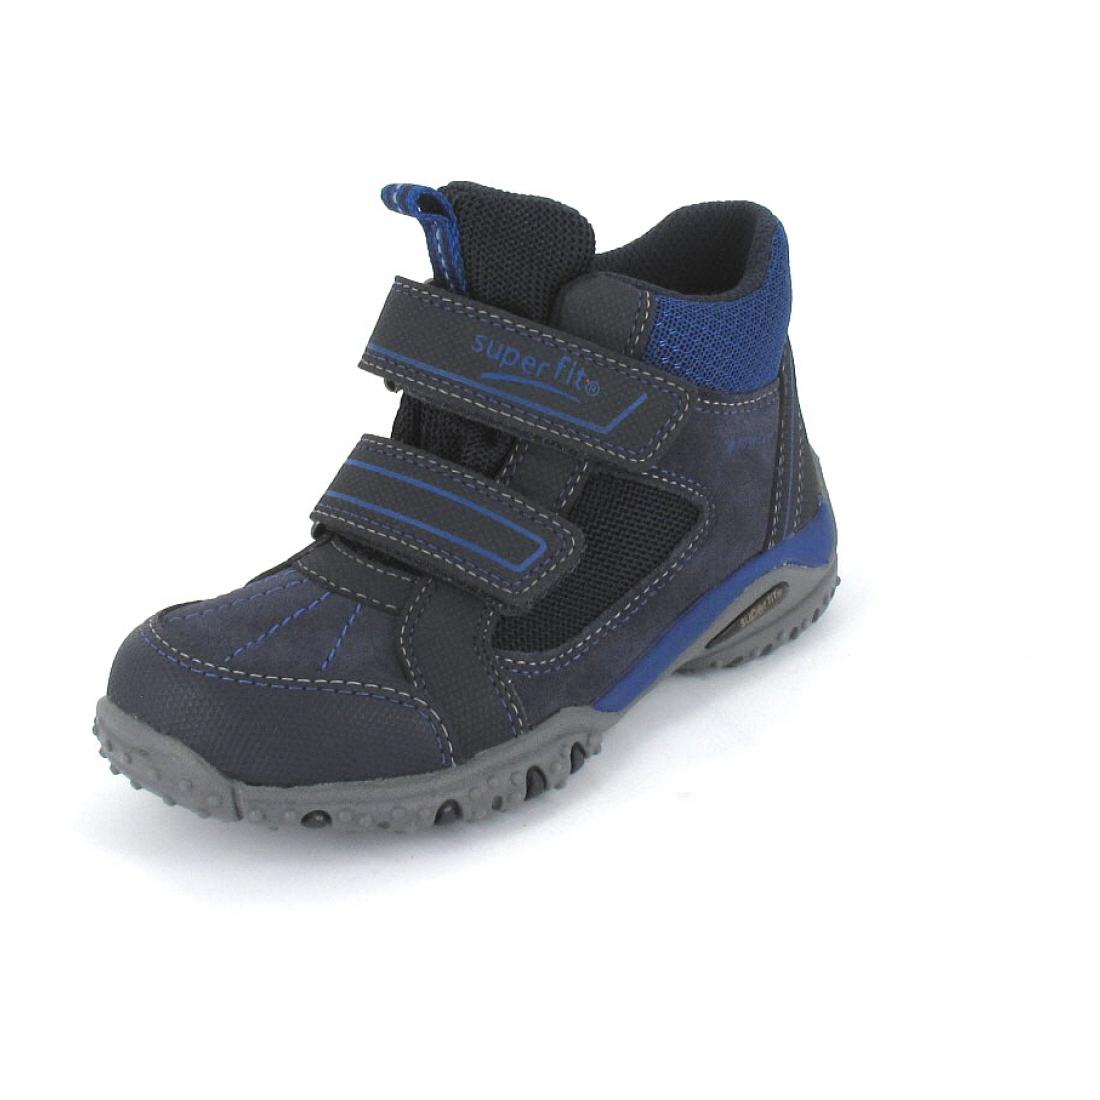 Superfit Winterstiefel SPORT 4